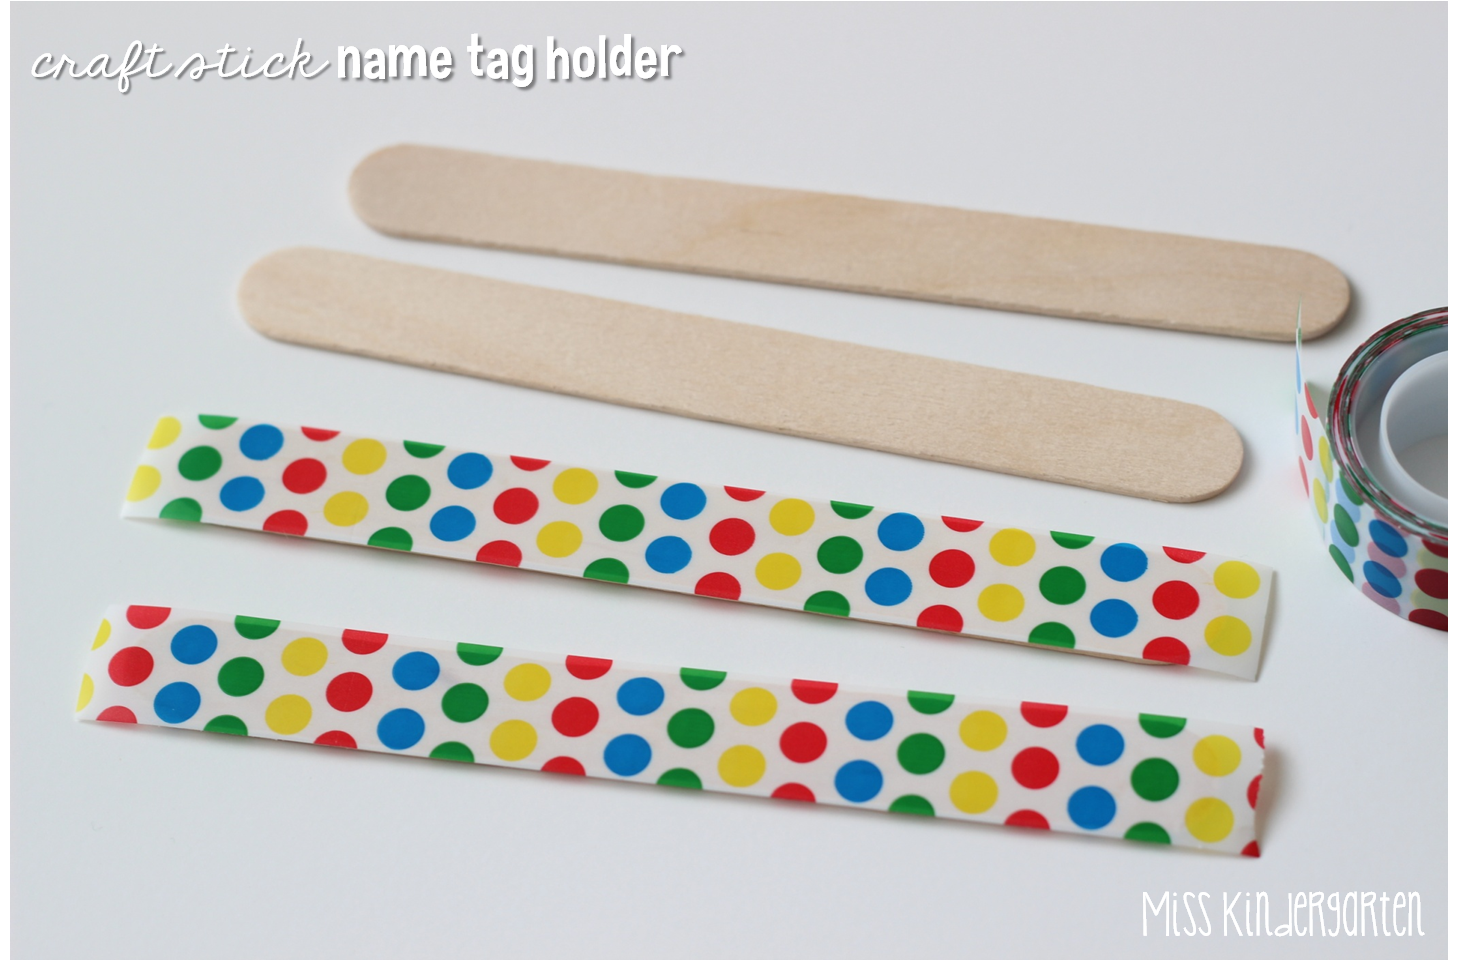 Name tag craft ideas - I Started By Covering 2 Craft Sticks With The Dots The Tape Fits Almost Perfectly It Just Needed A Little Bit Of Trimming